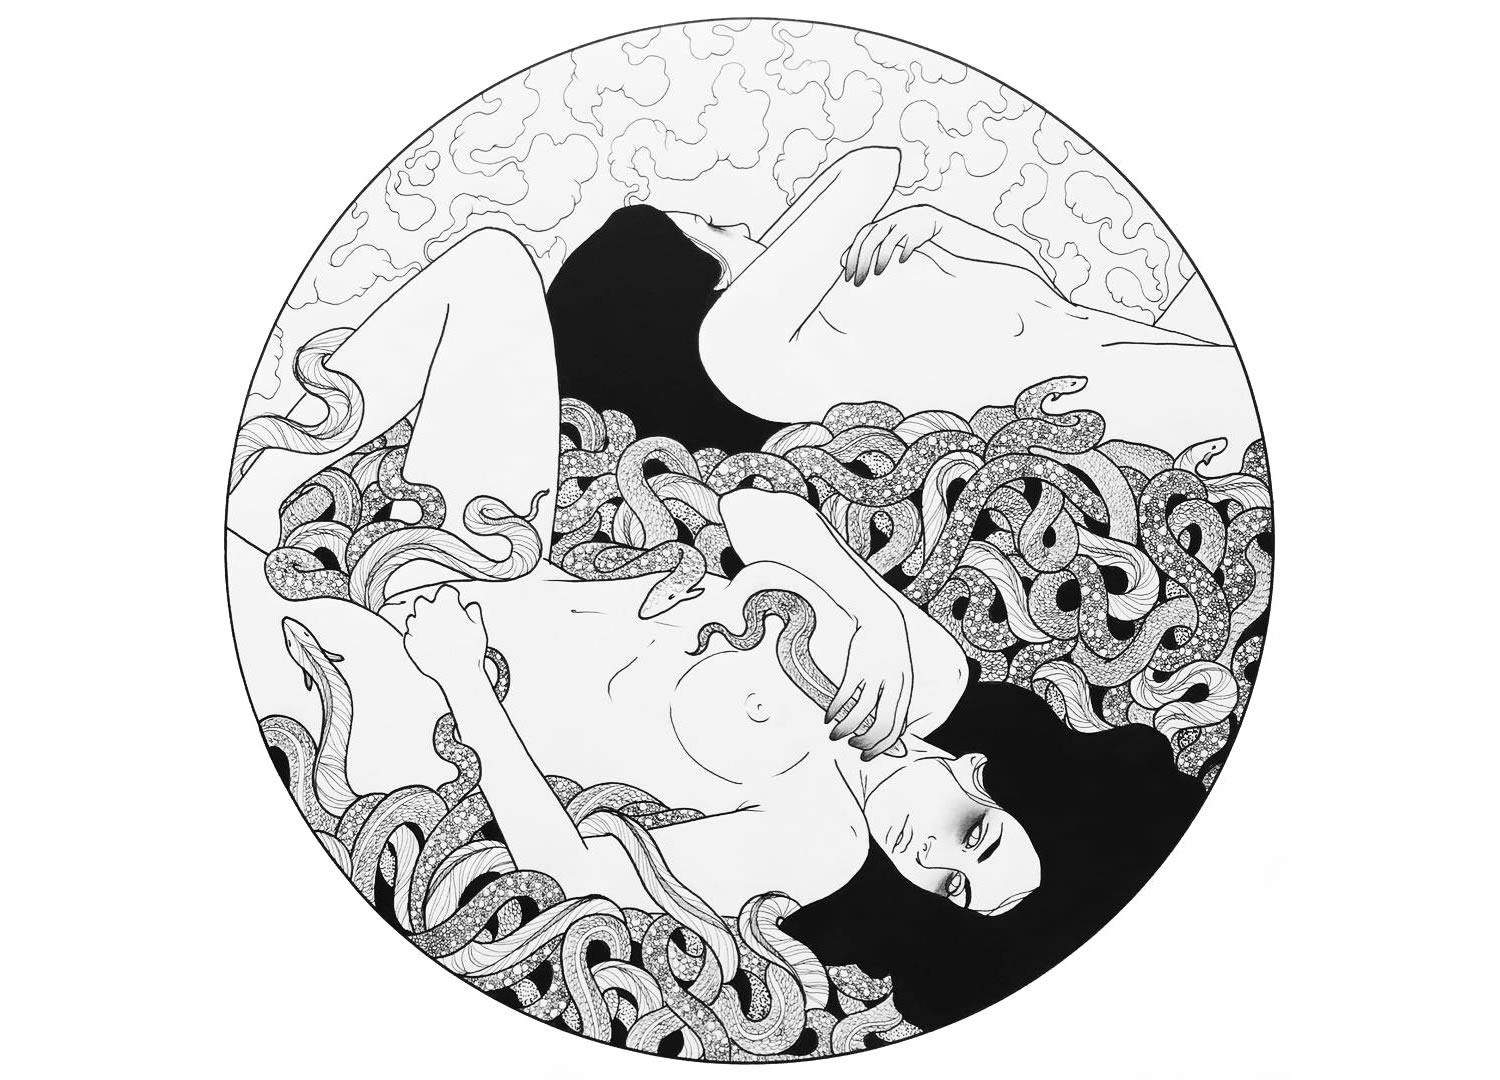 nude women rolling in snakes and plants